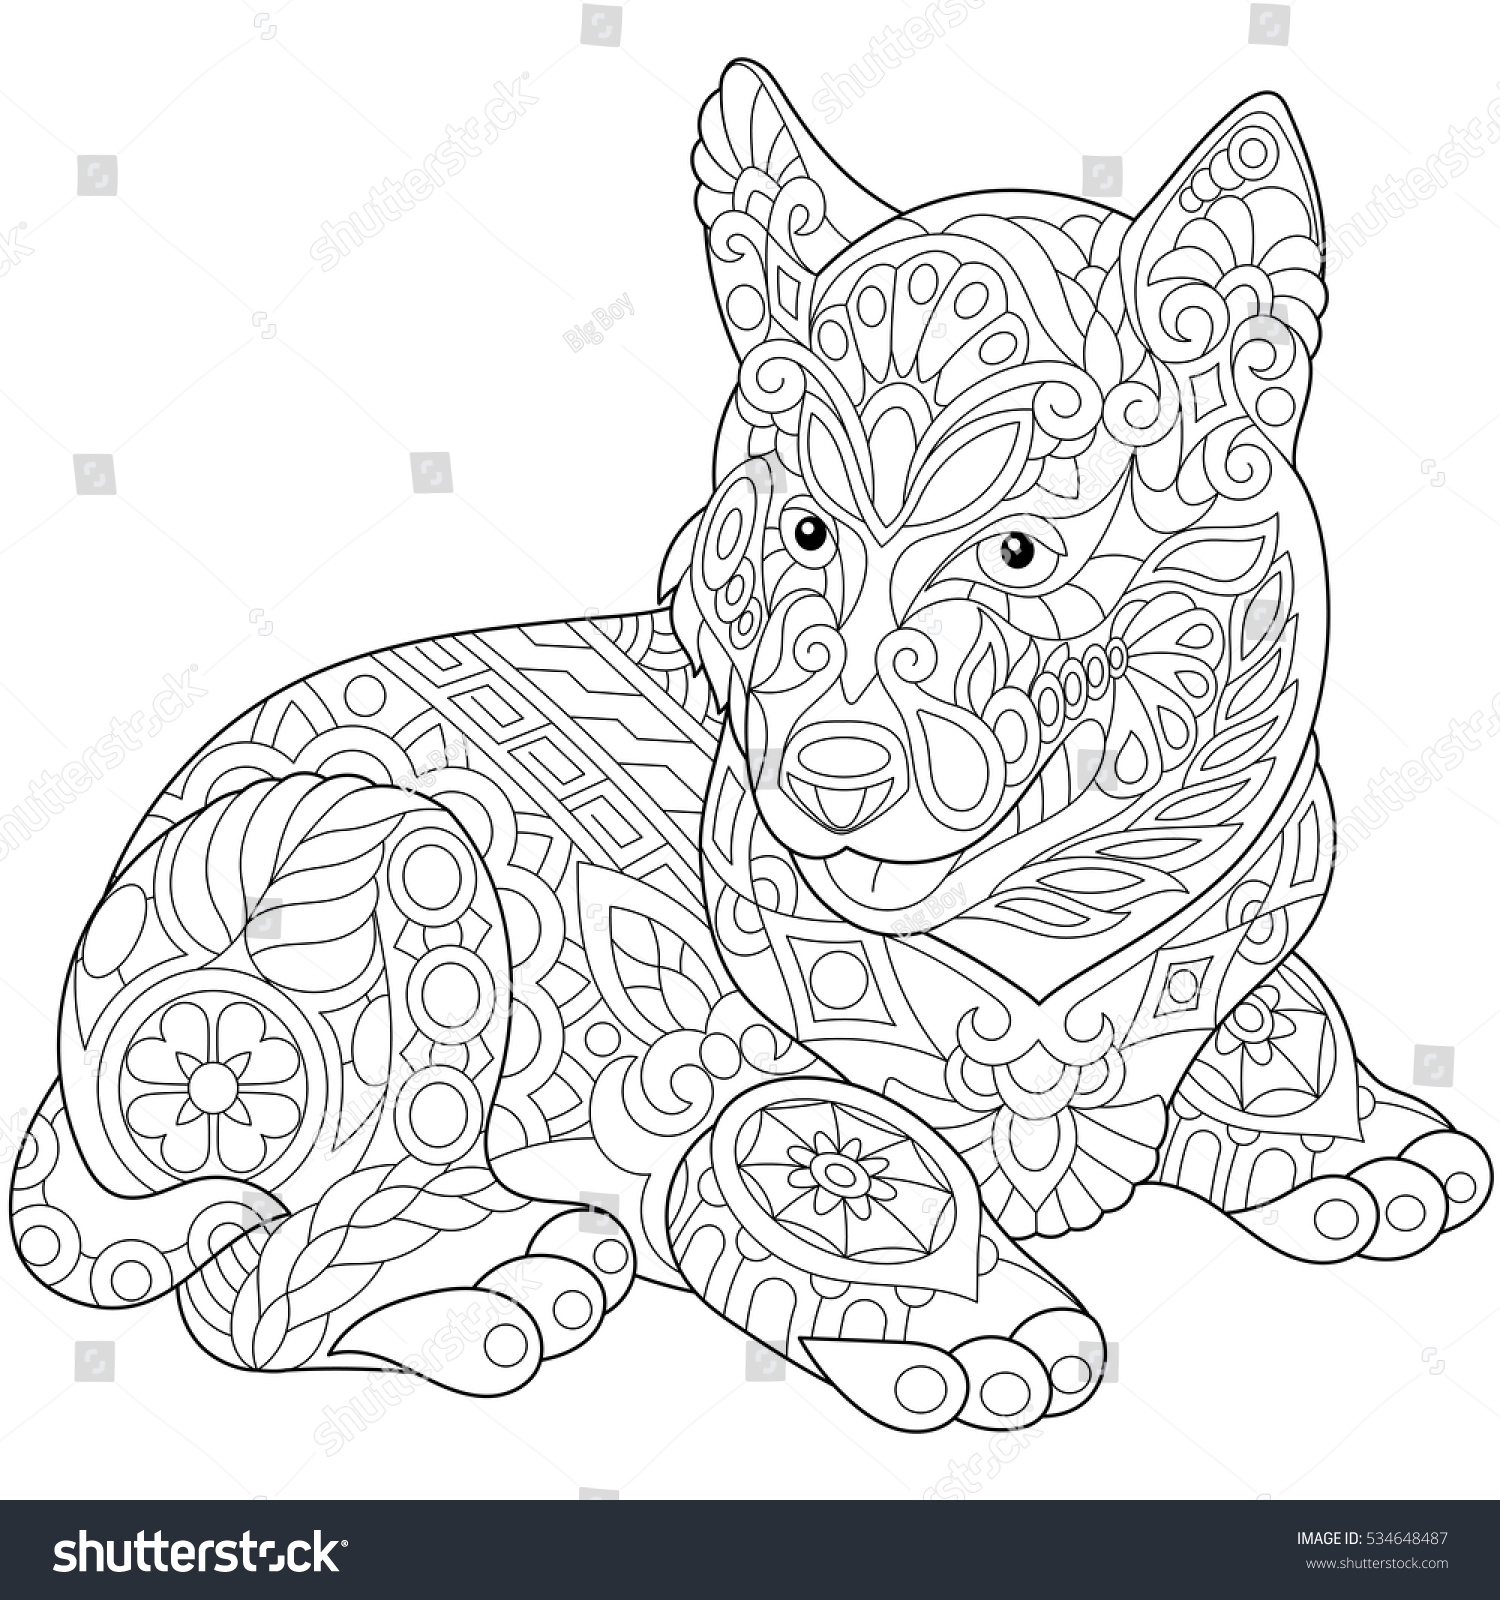 coloring page of husky puppy dog symbol of 2018 chinese new year freehand sketch